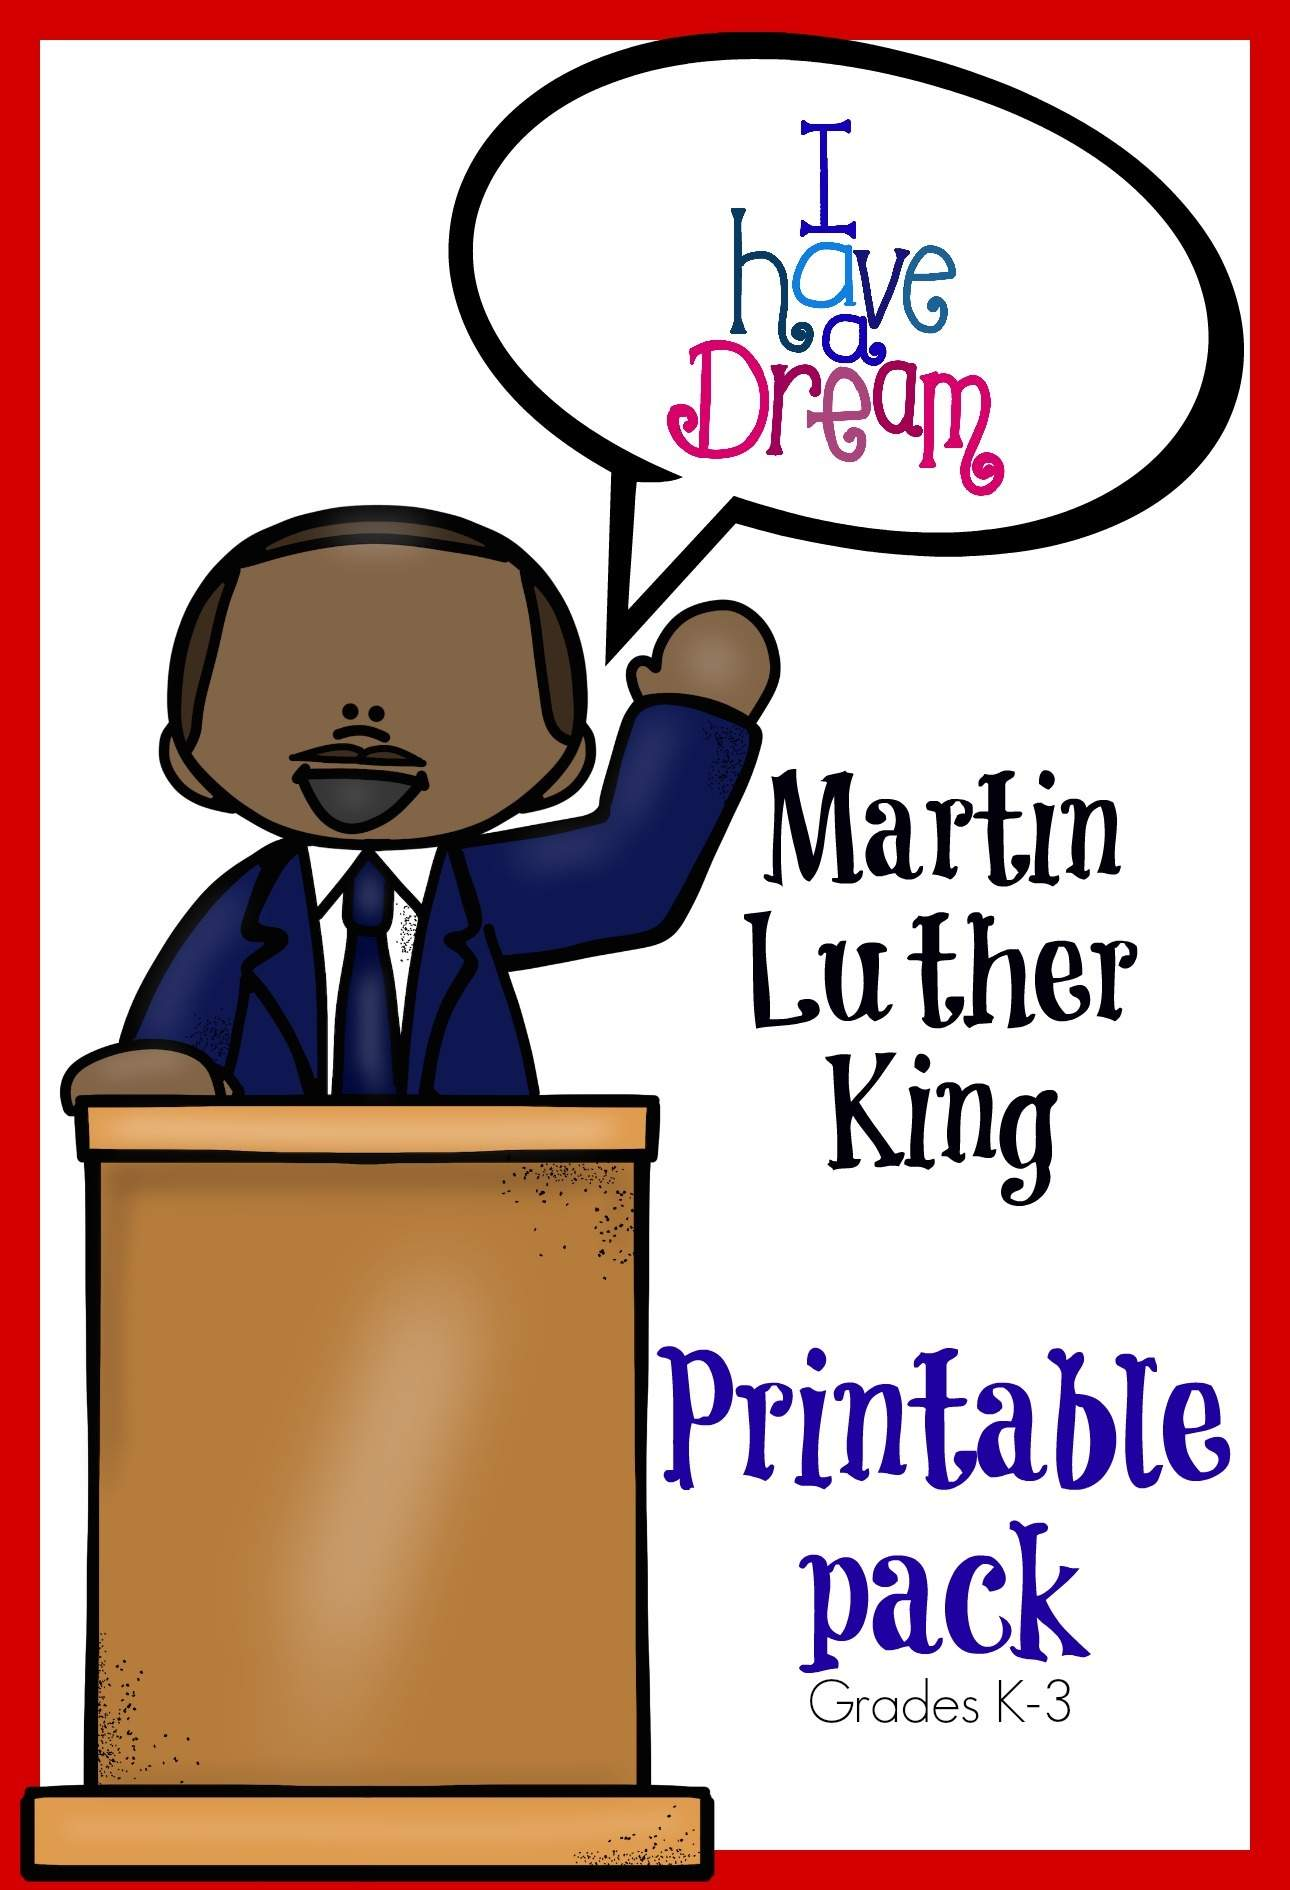 Quotes Martin Luther King Printables QuotesGram